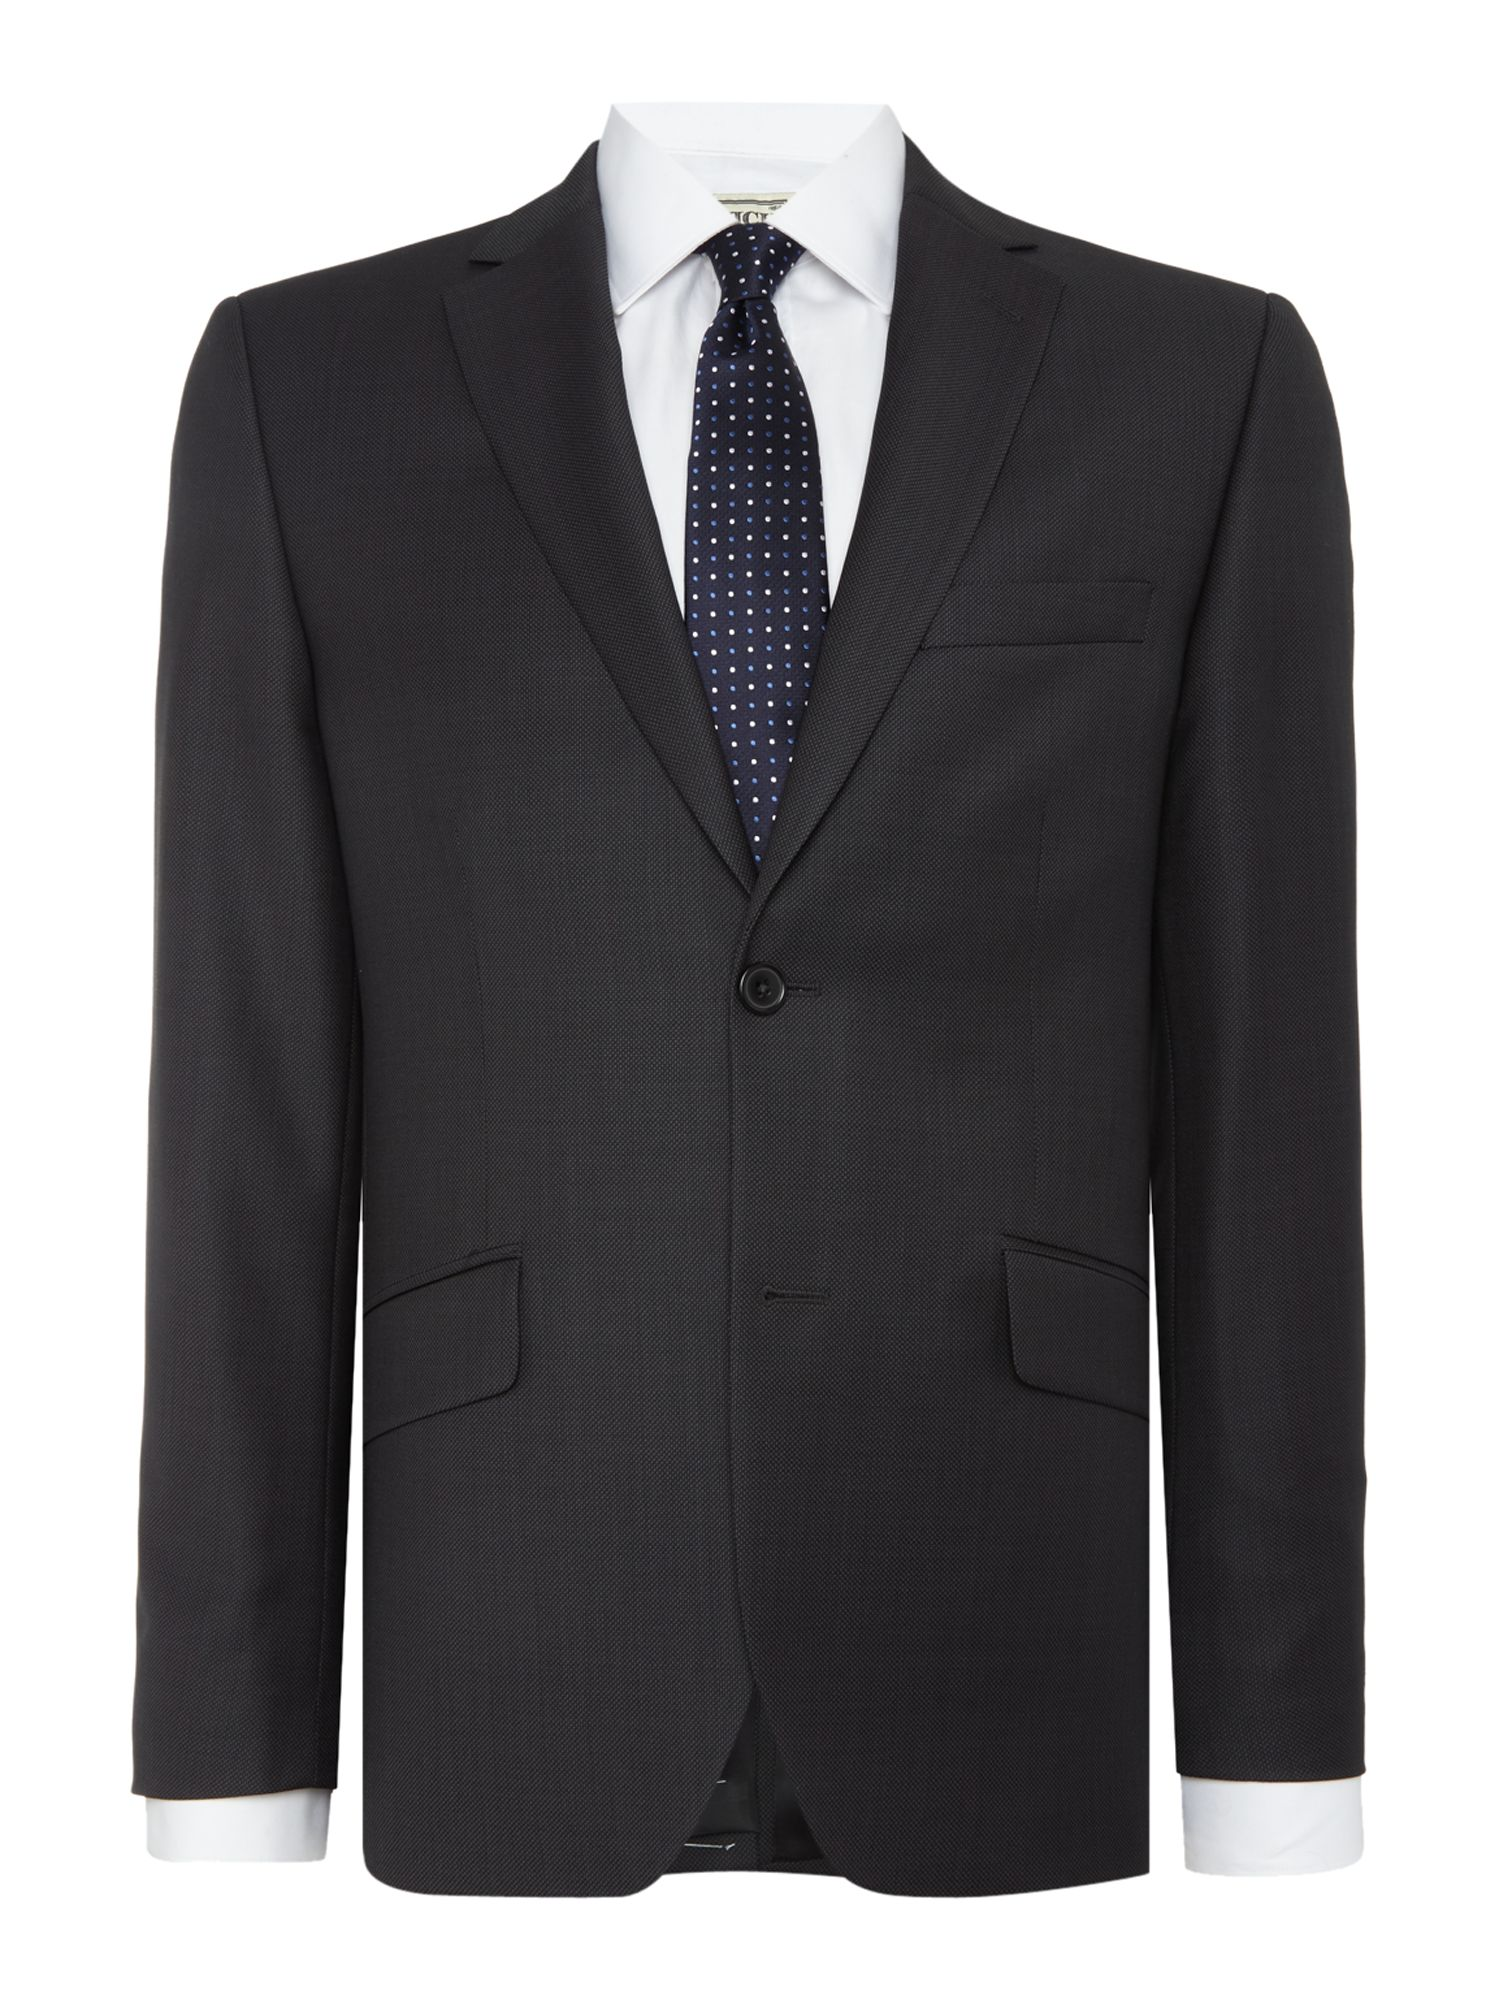 Howick Tailored Men's Howick Tailored Darby Birdseye Slim Fit Suit Jacket, Charcoal